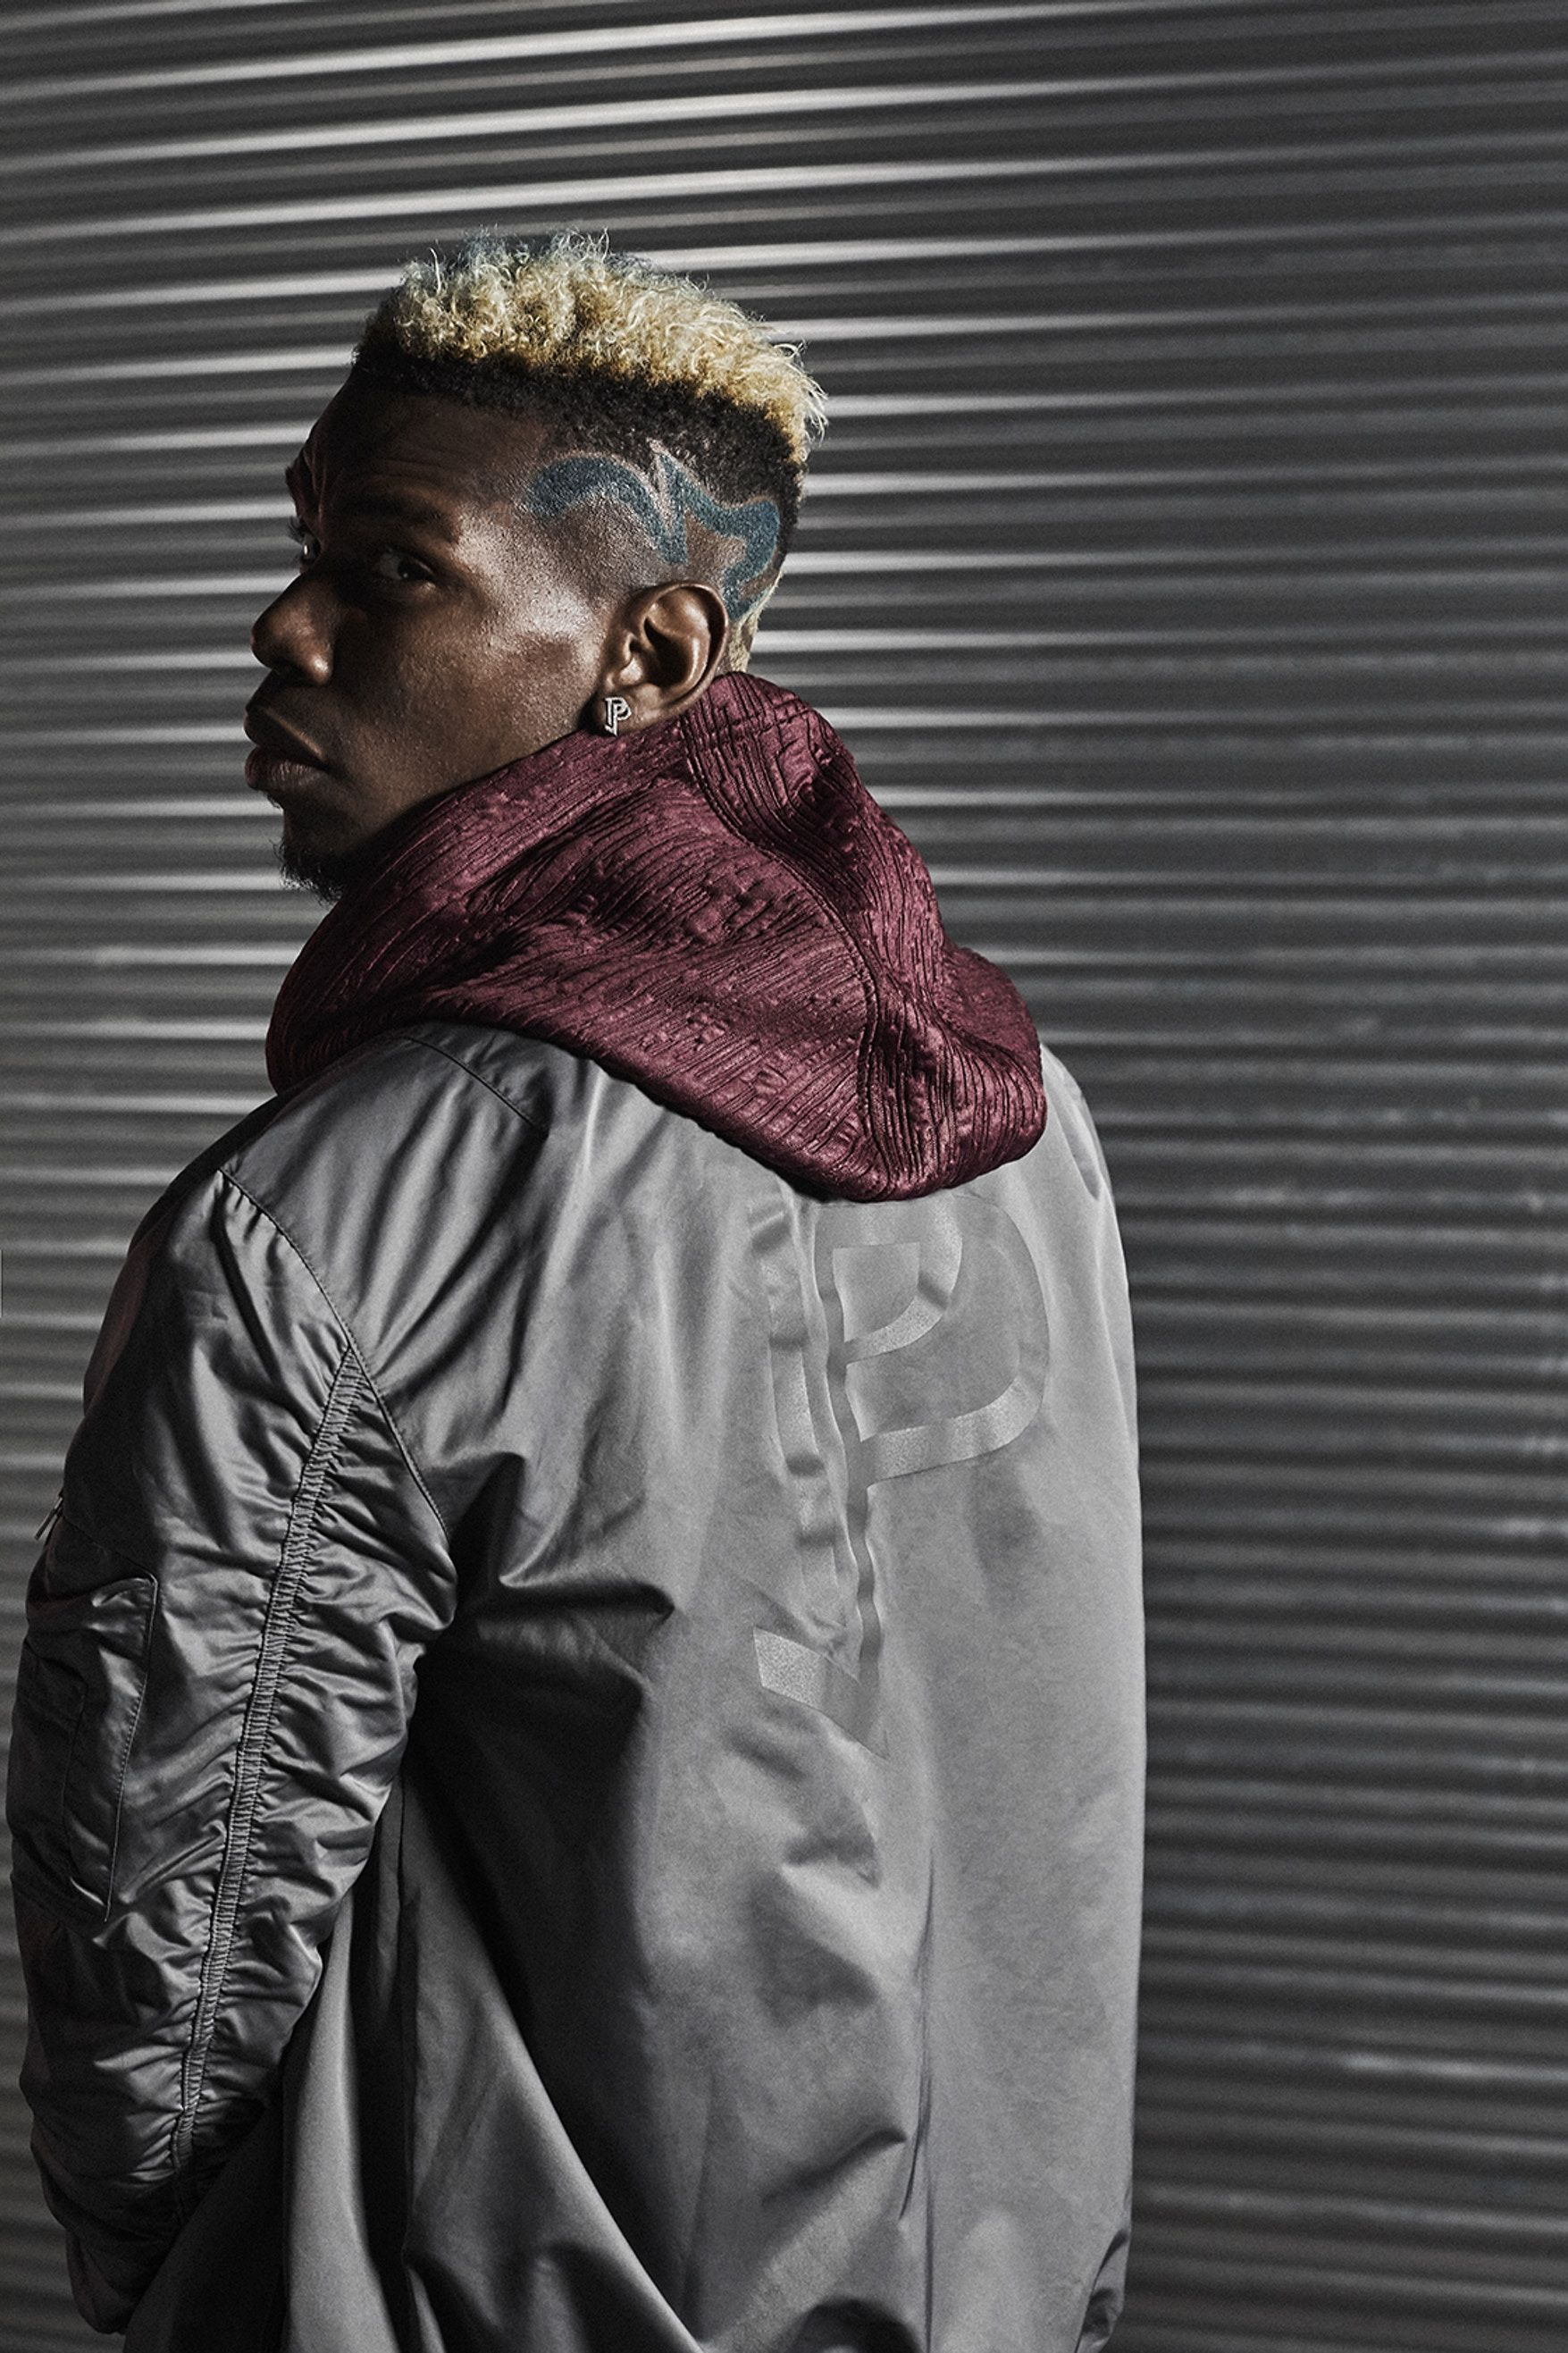 a241341f3 Paul Pogba adidas Season 3 Collection 2018 Release Date Info Manchester  United Soccer Football Predator 18+ Control Boots Cleats Information  Apparel Details